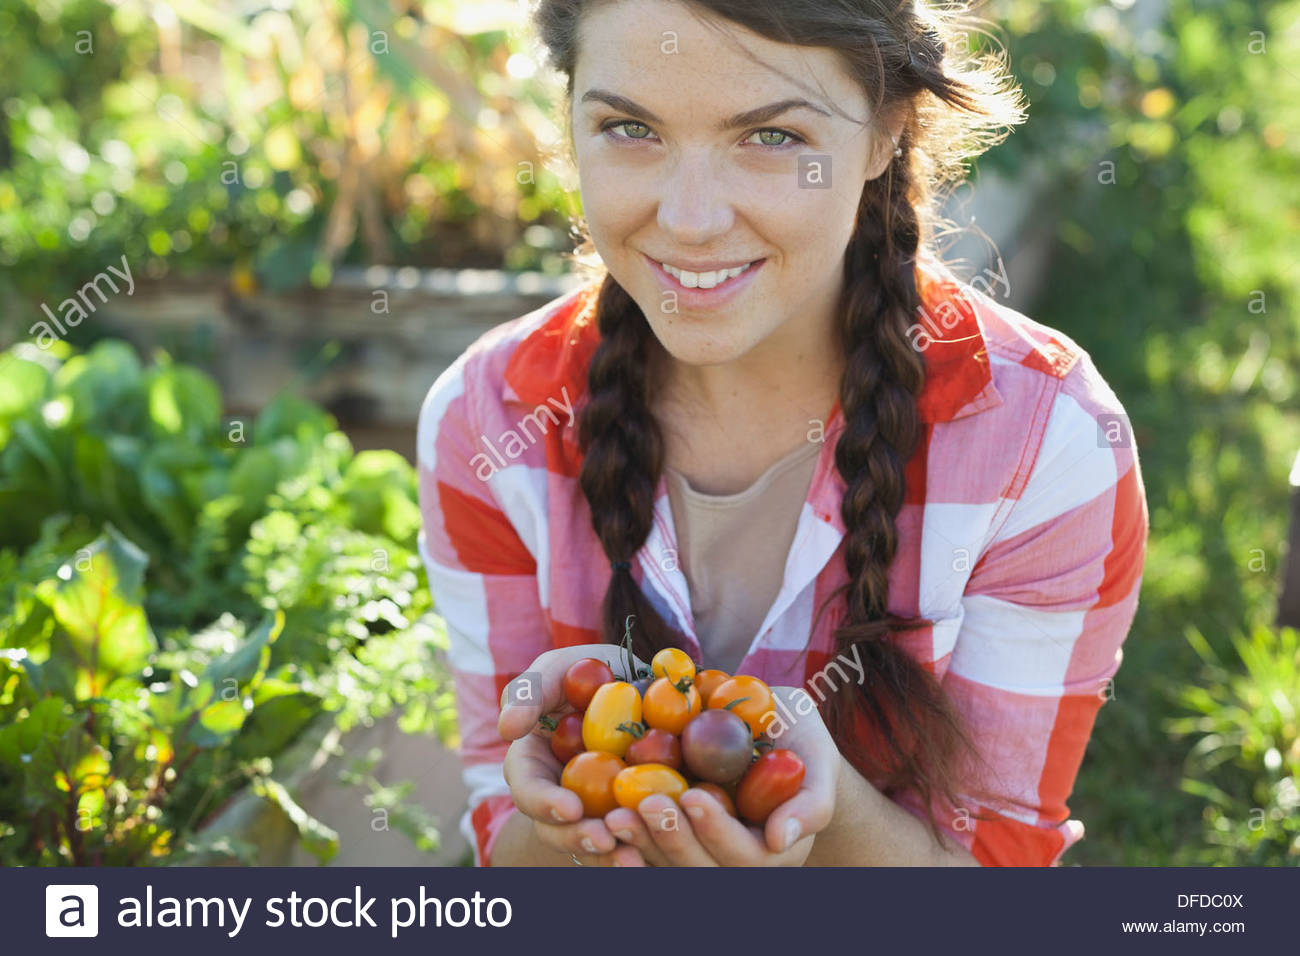 Portrait of woman with handful of cherry tomatoes - Stock Image